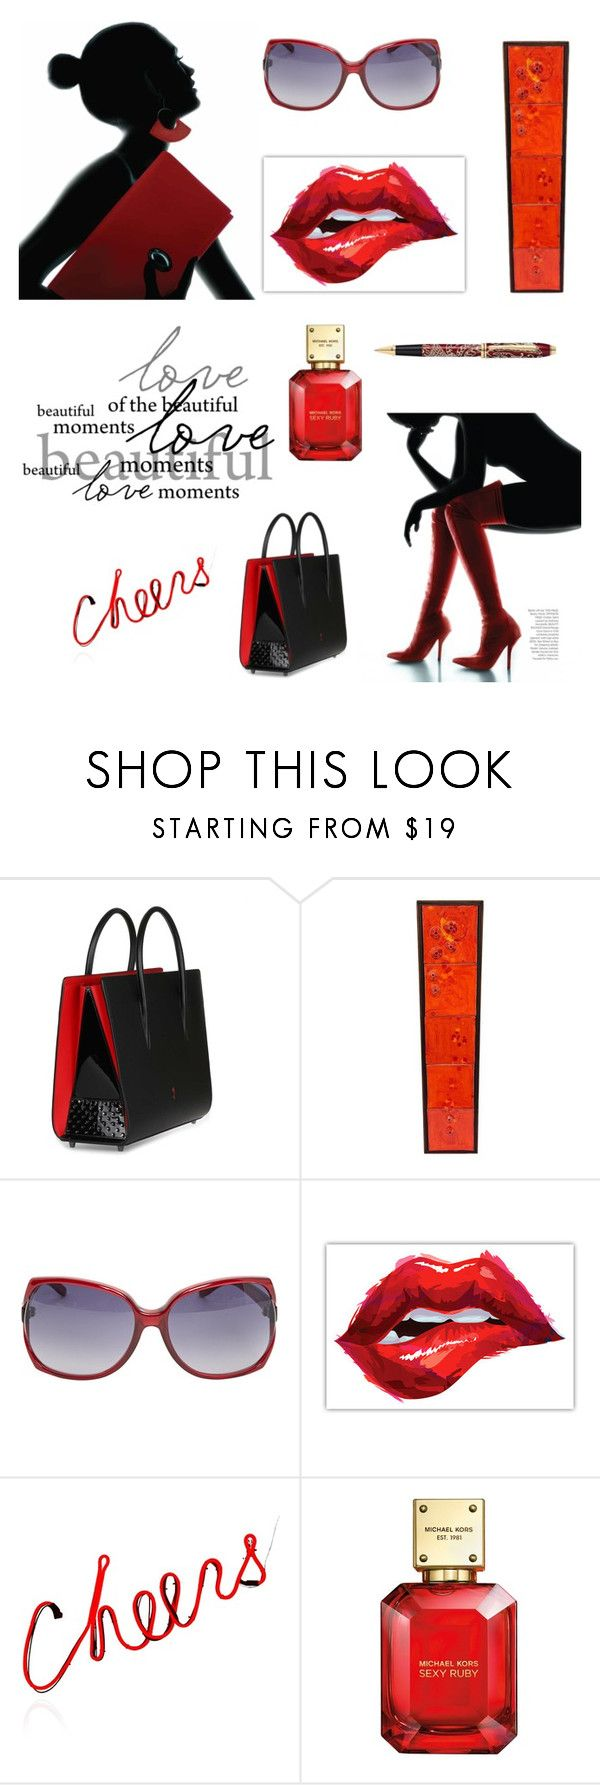 """""""Cheers Love ❤️"""" by magic-mia ❤ liked on Polyvore featuring beauty, Christian Louboutin, Vogue, Michael Kors, love, cheers and polyvorefashion"""